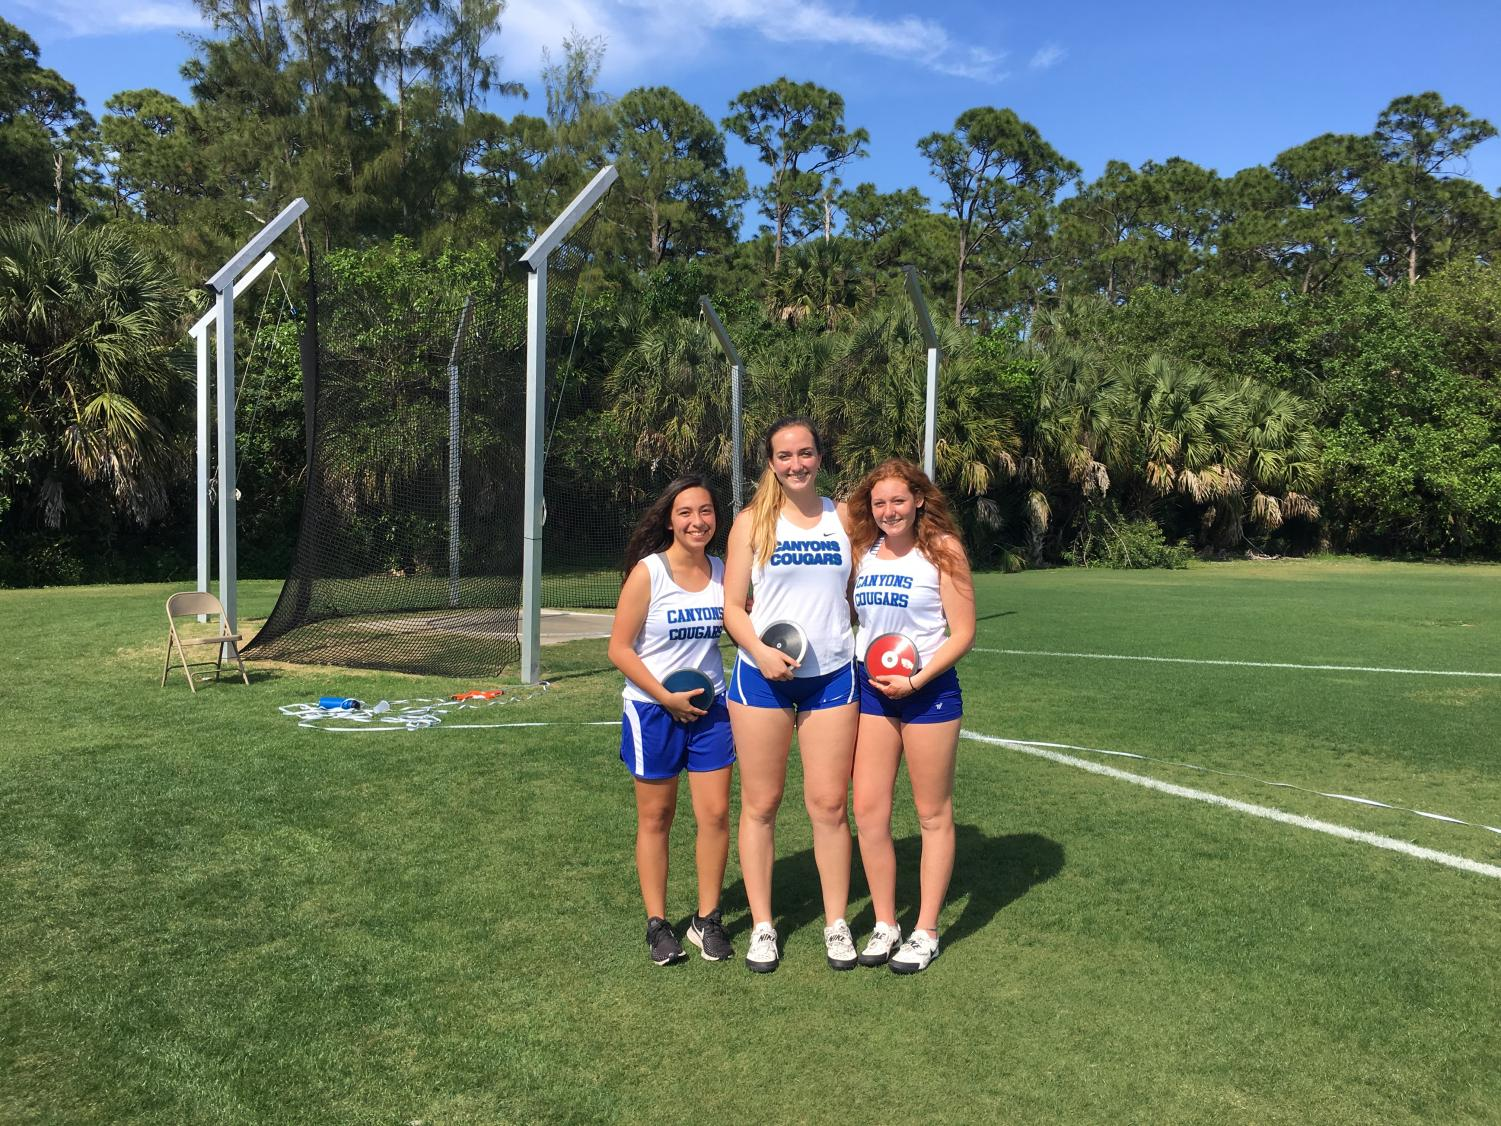 (From left to right) Ashley Villa Real, Cara Salsberry, and Kassidy Rubin.